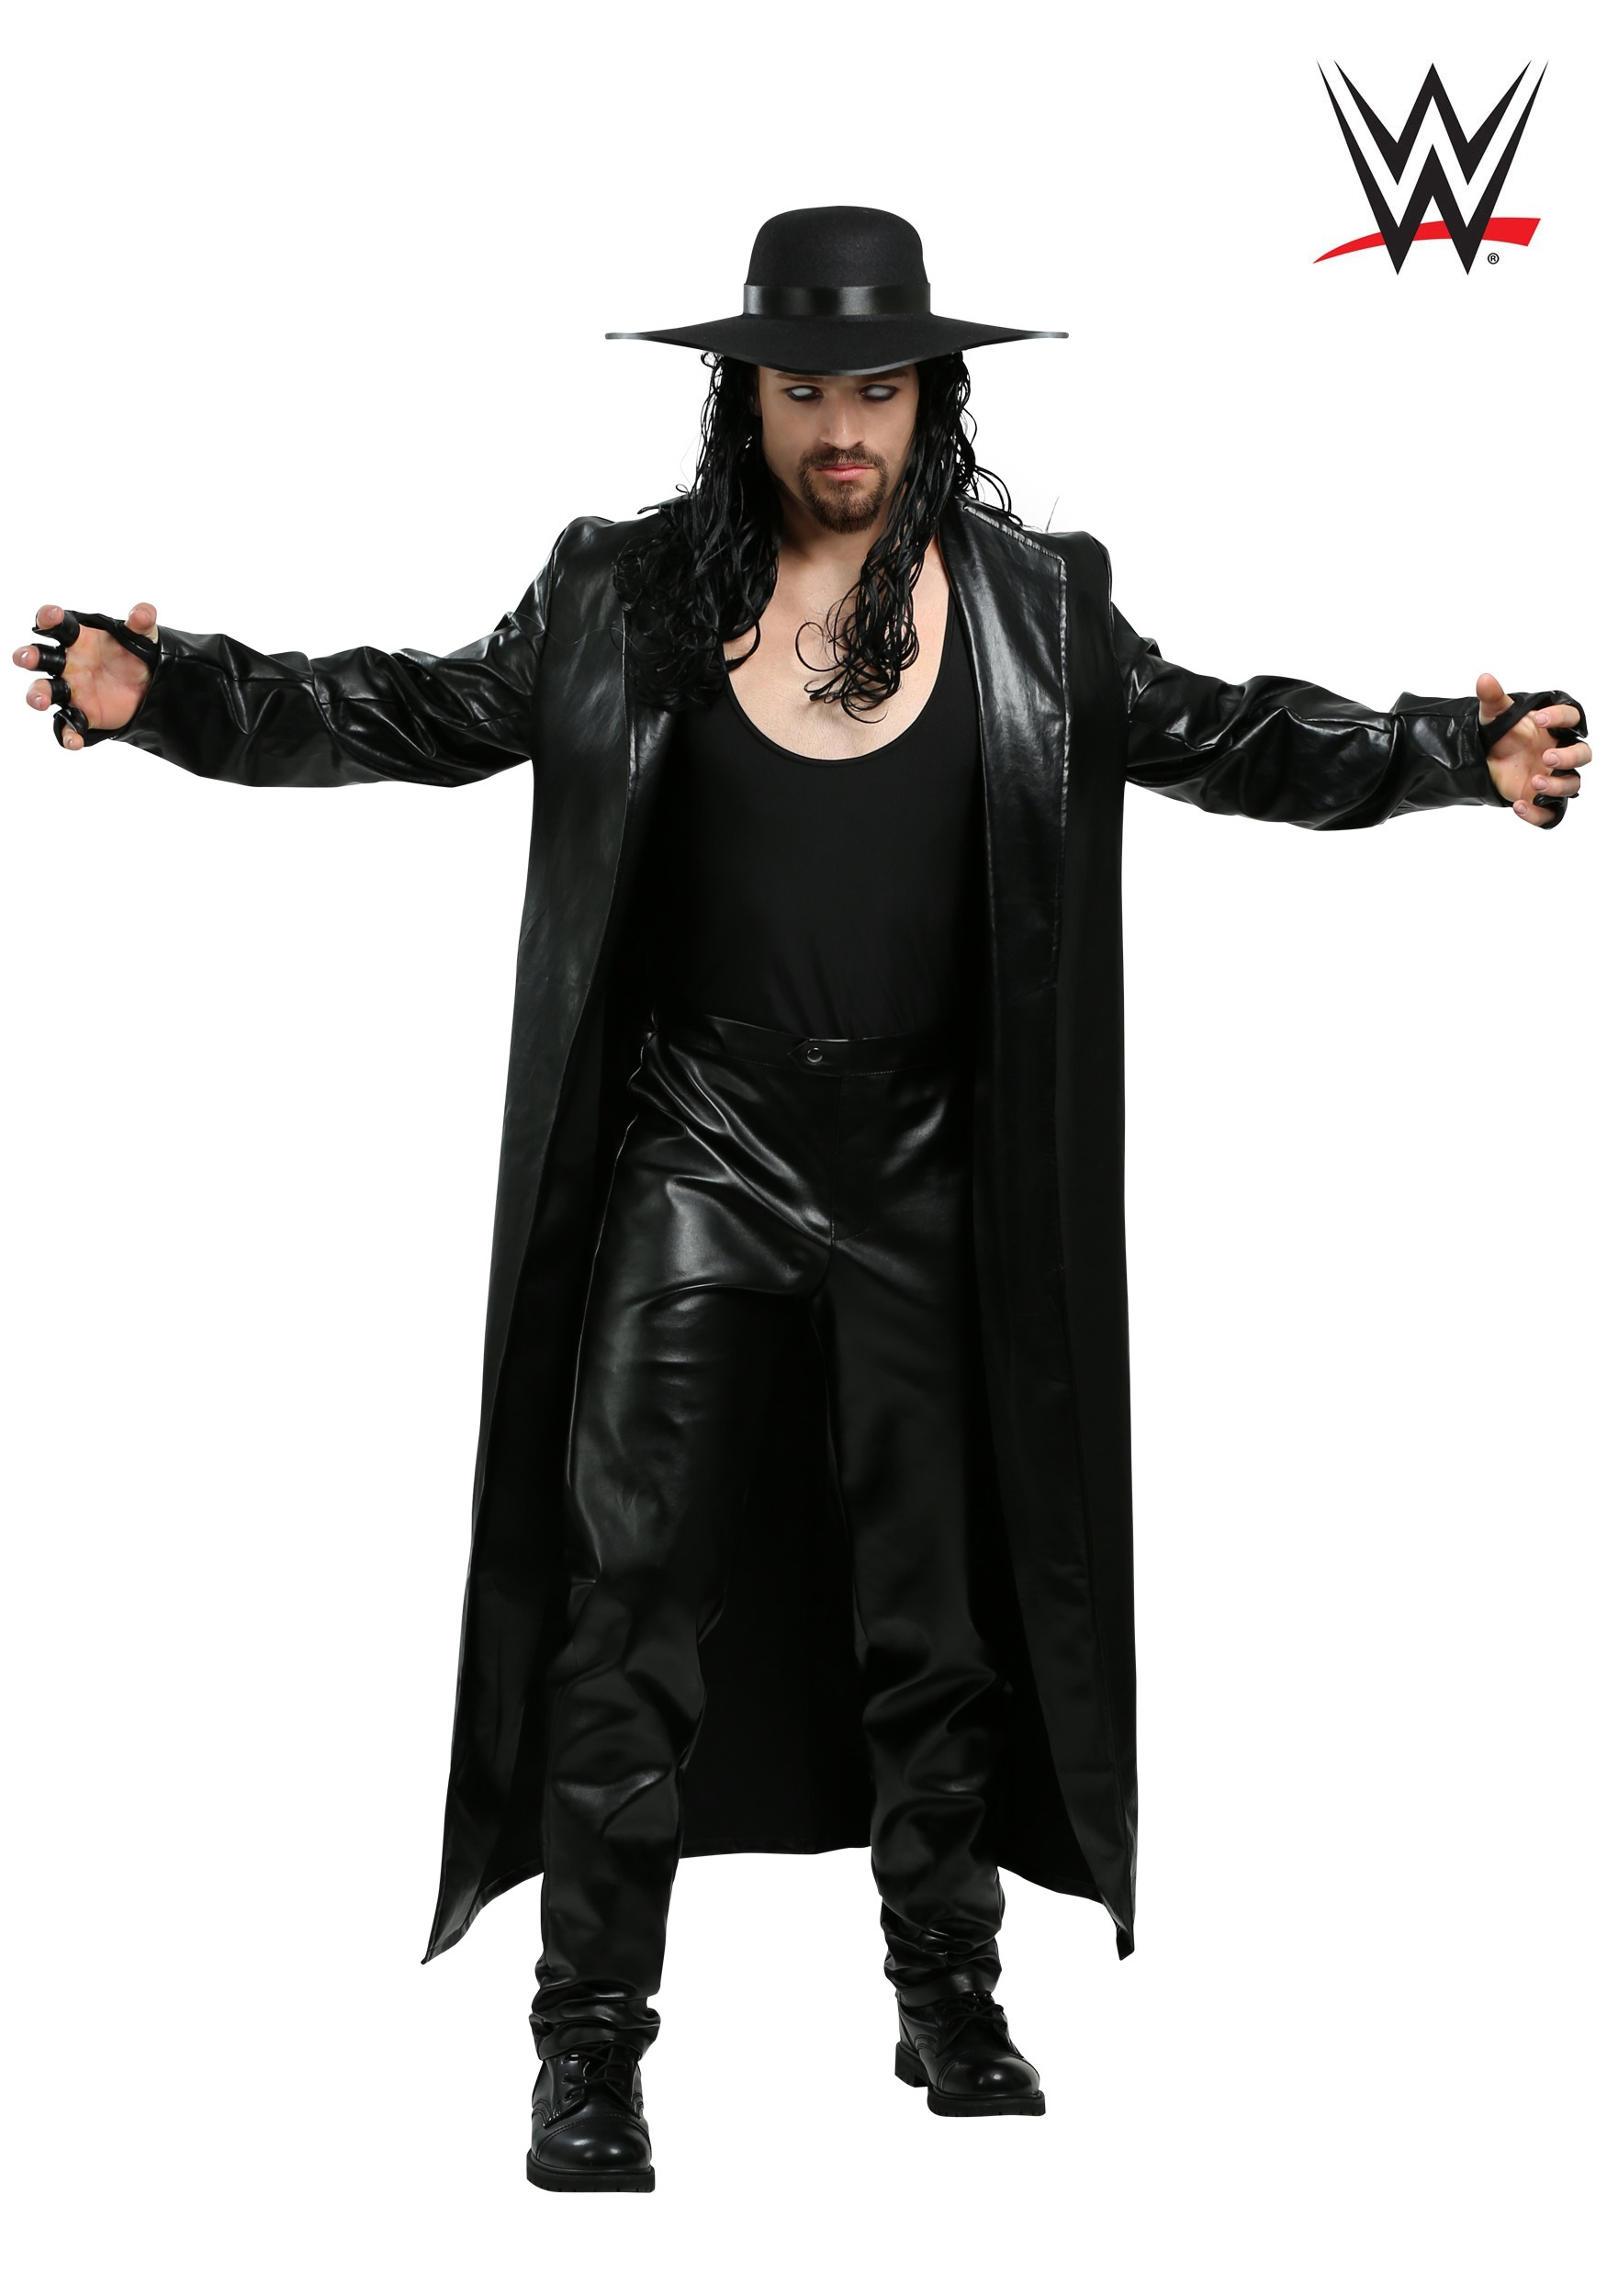 741160a5d87 WWE Undertaker Plus Size Costume 2X 3X 4X